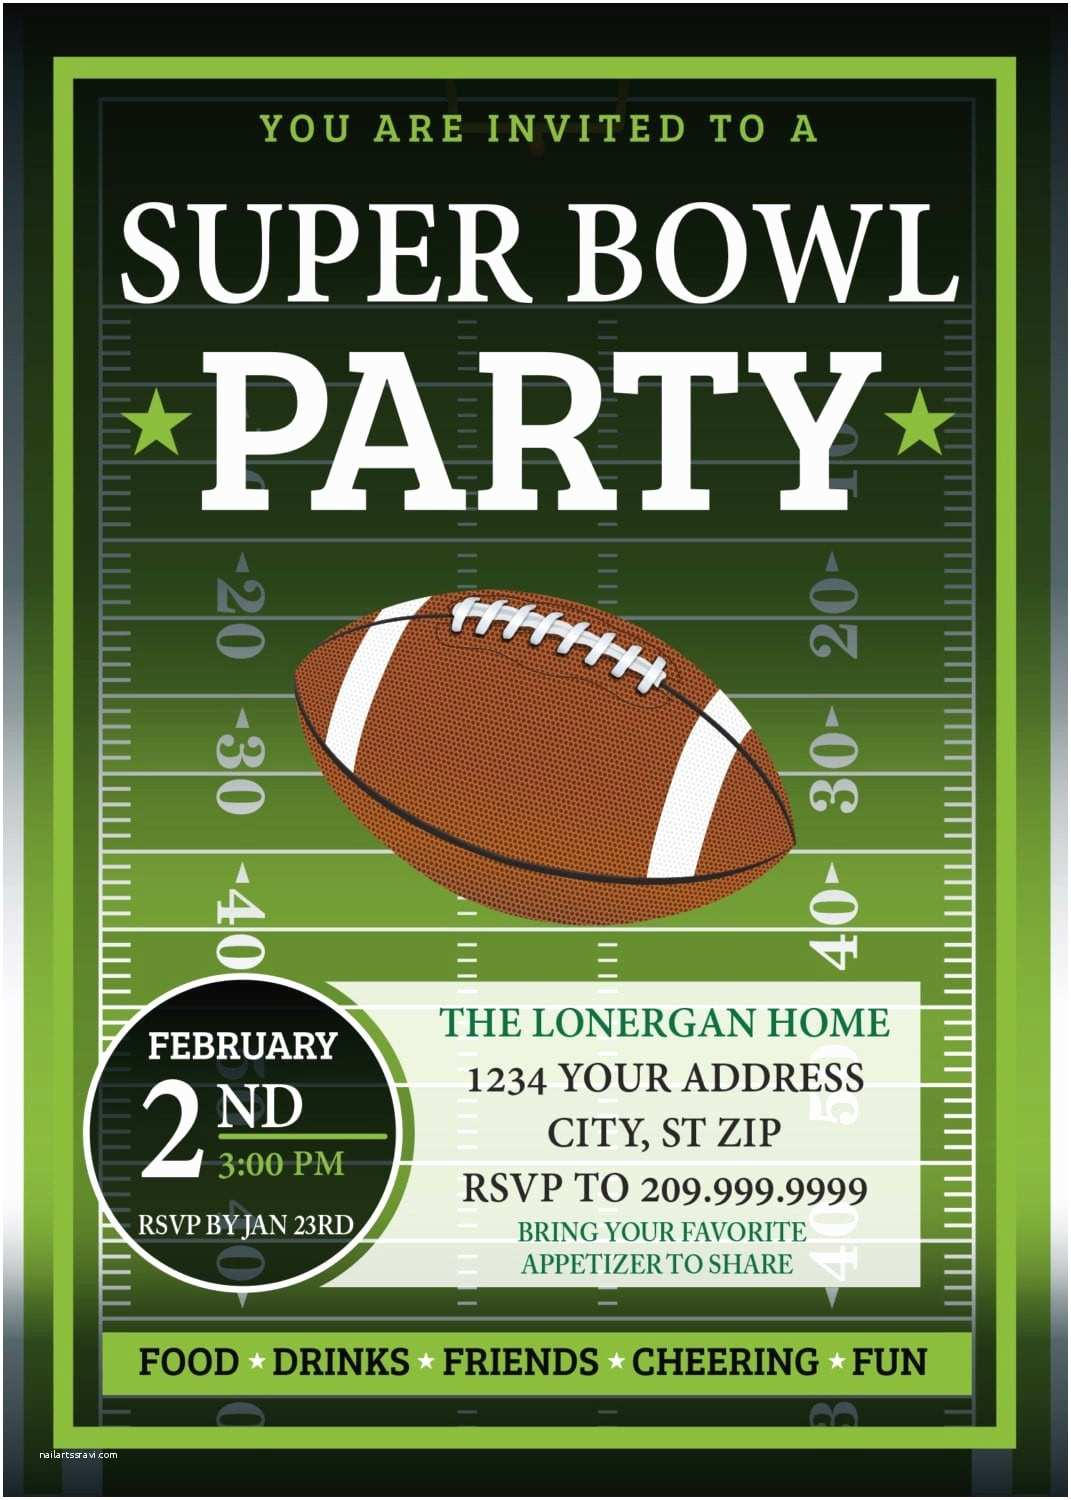 Super Bowl Party Invitations Super Bowl Party Invitation Wording Mickey Mouse